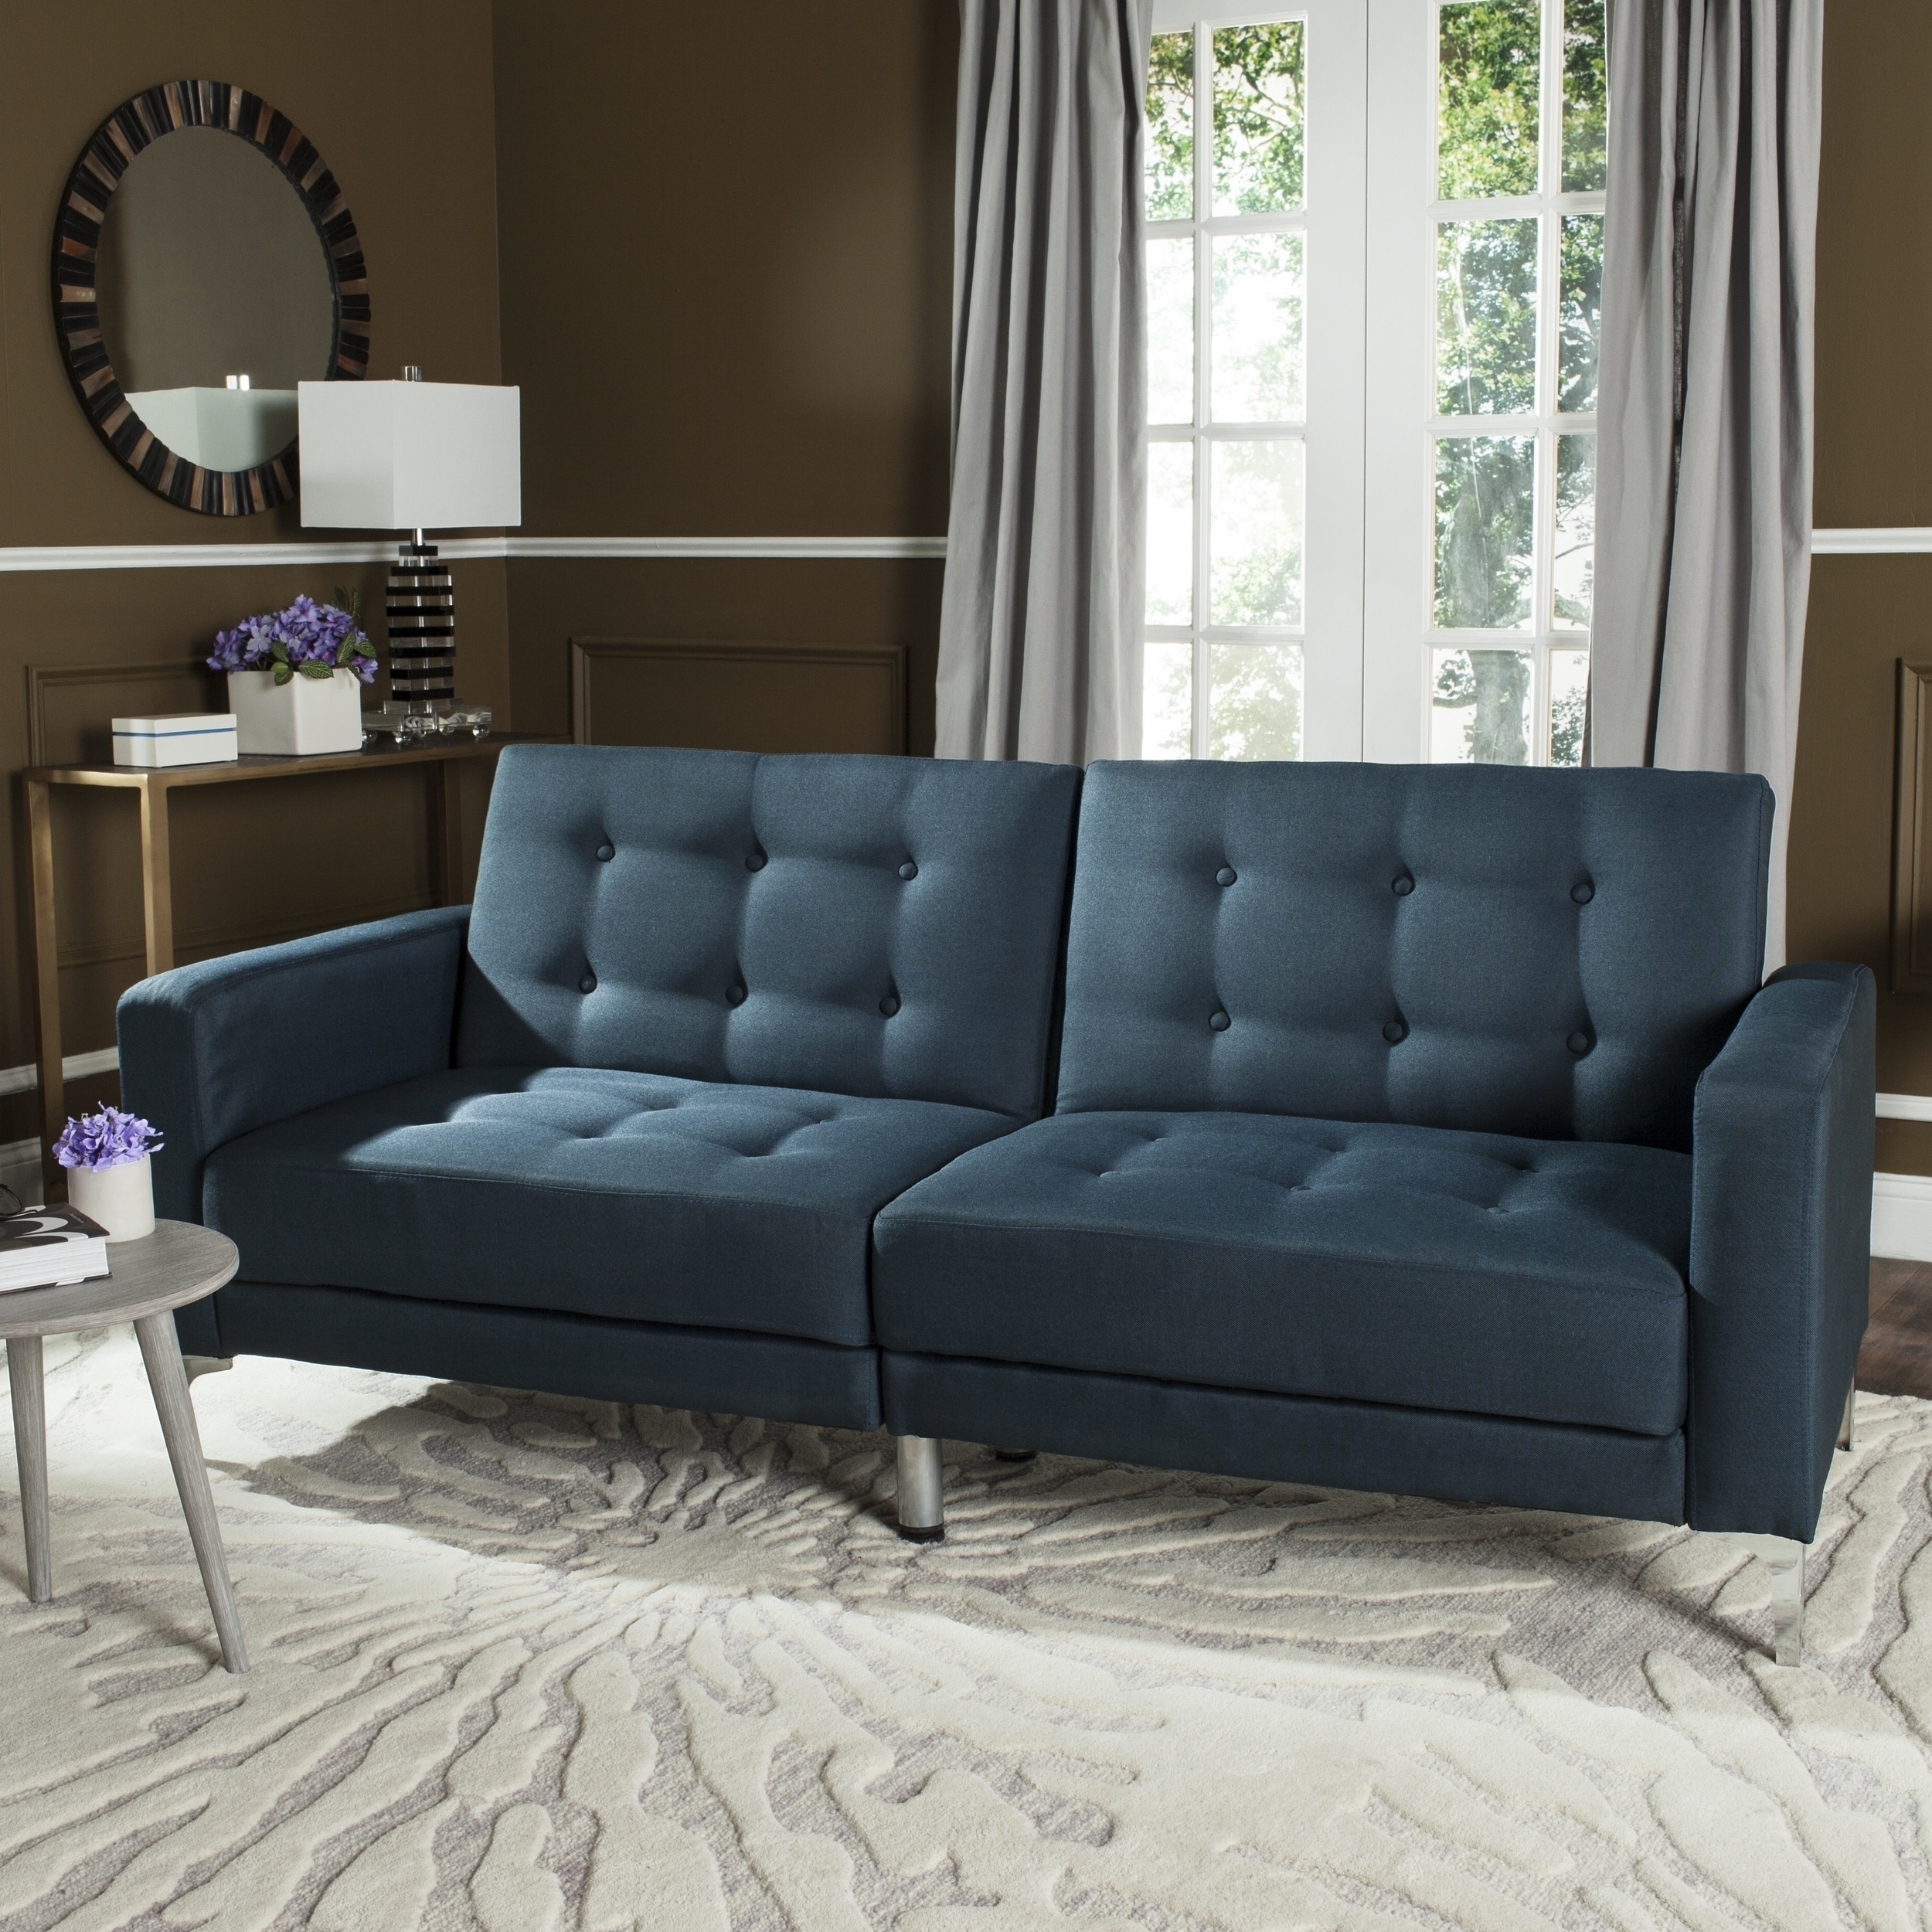 Safavieh Soho Two In One Foldable Navy Loveseat Sofa Bed On Free Shipping Today 12077536